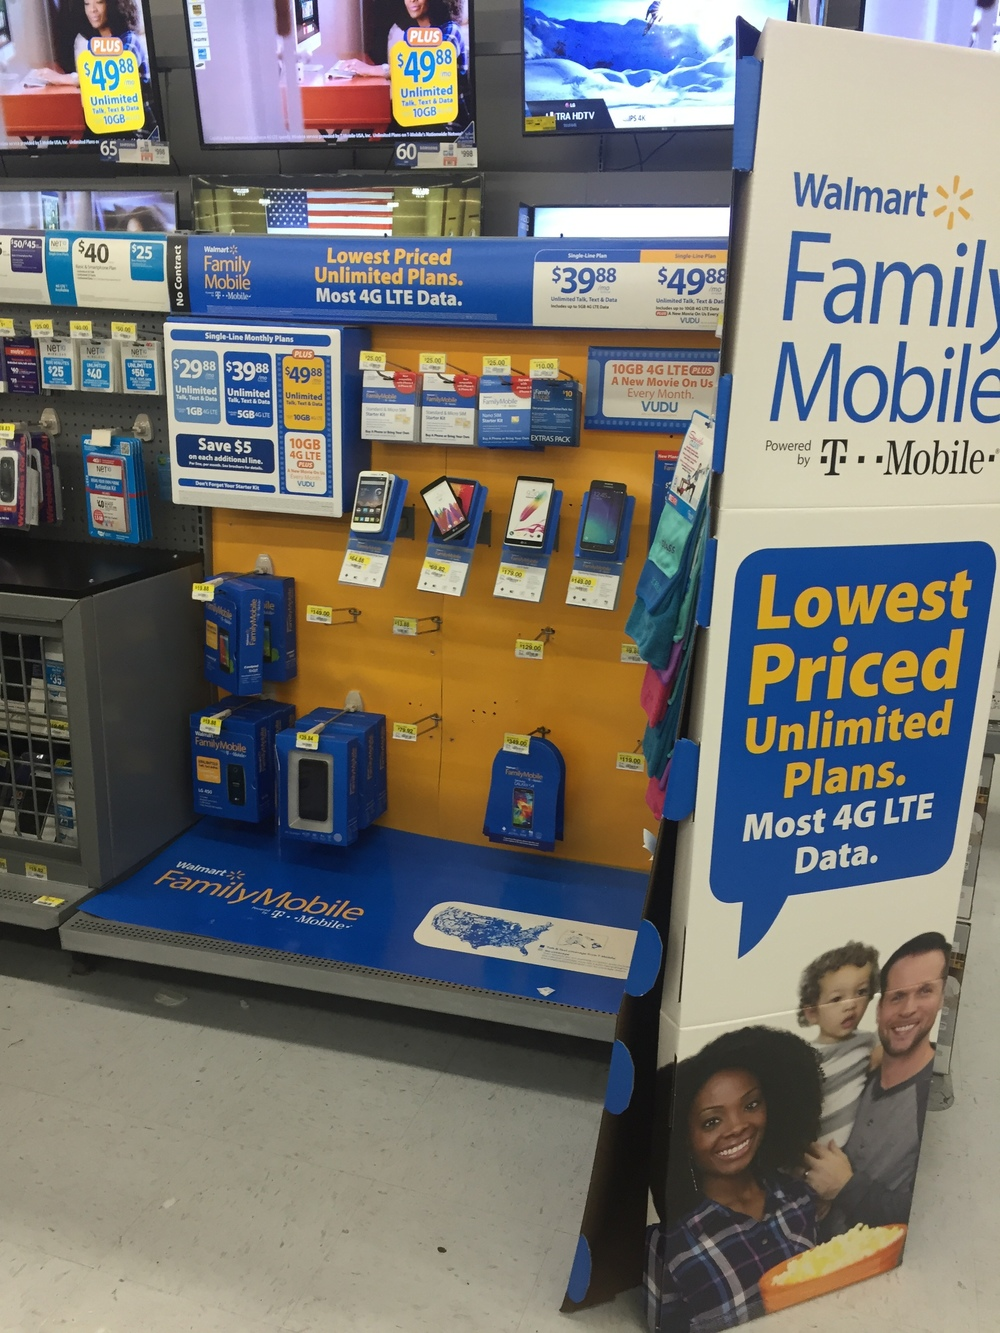 I was so hype to see the Gabe and Babe ad yall! LOL. As you can see people are ON IT! My Walmart had A LOT of phones sold out!